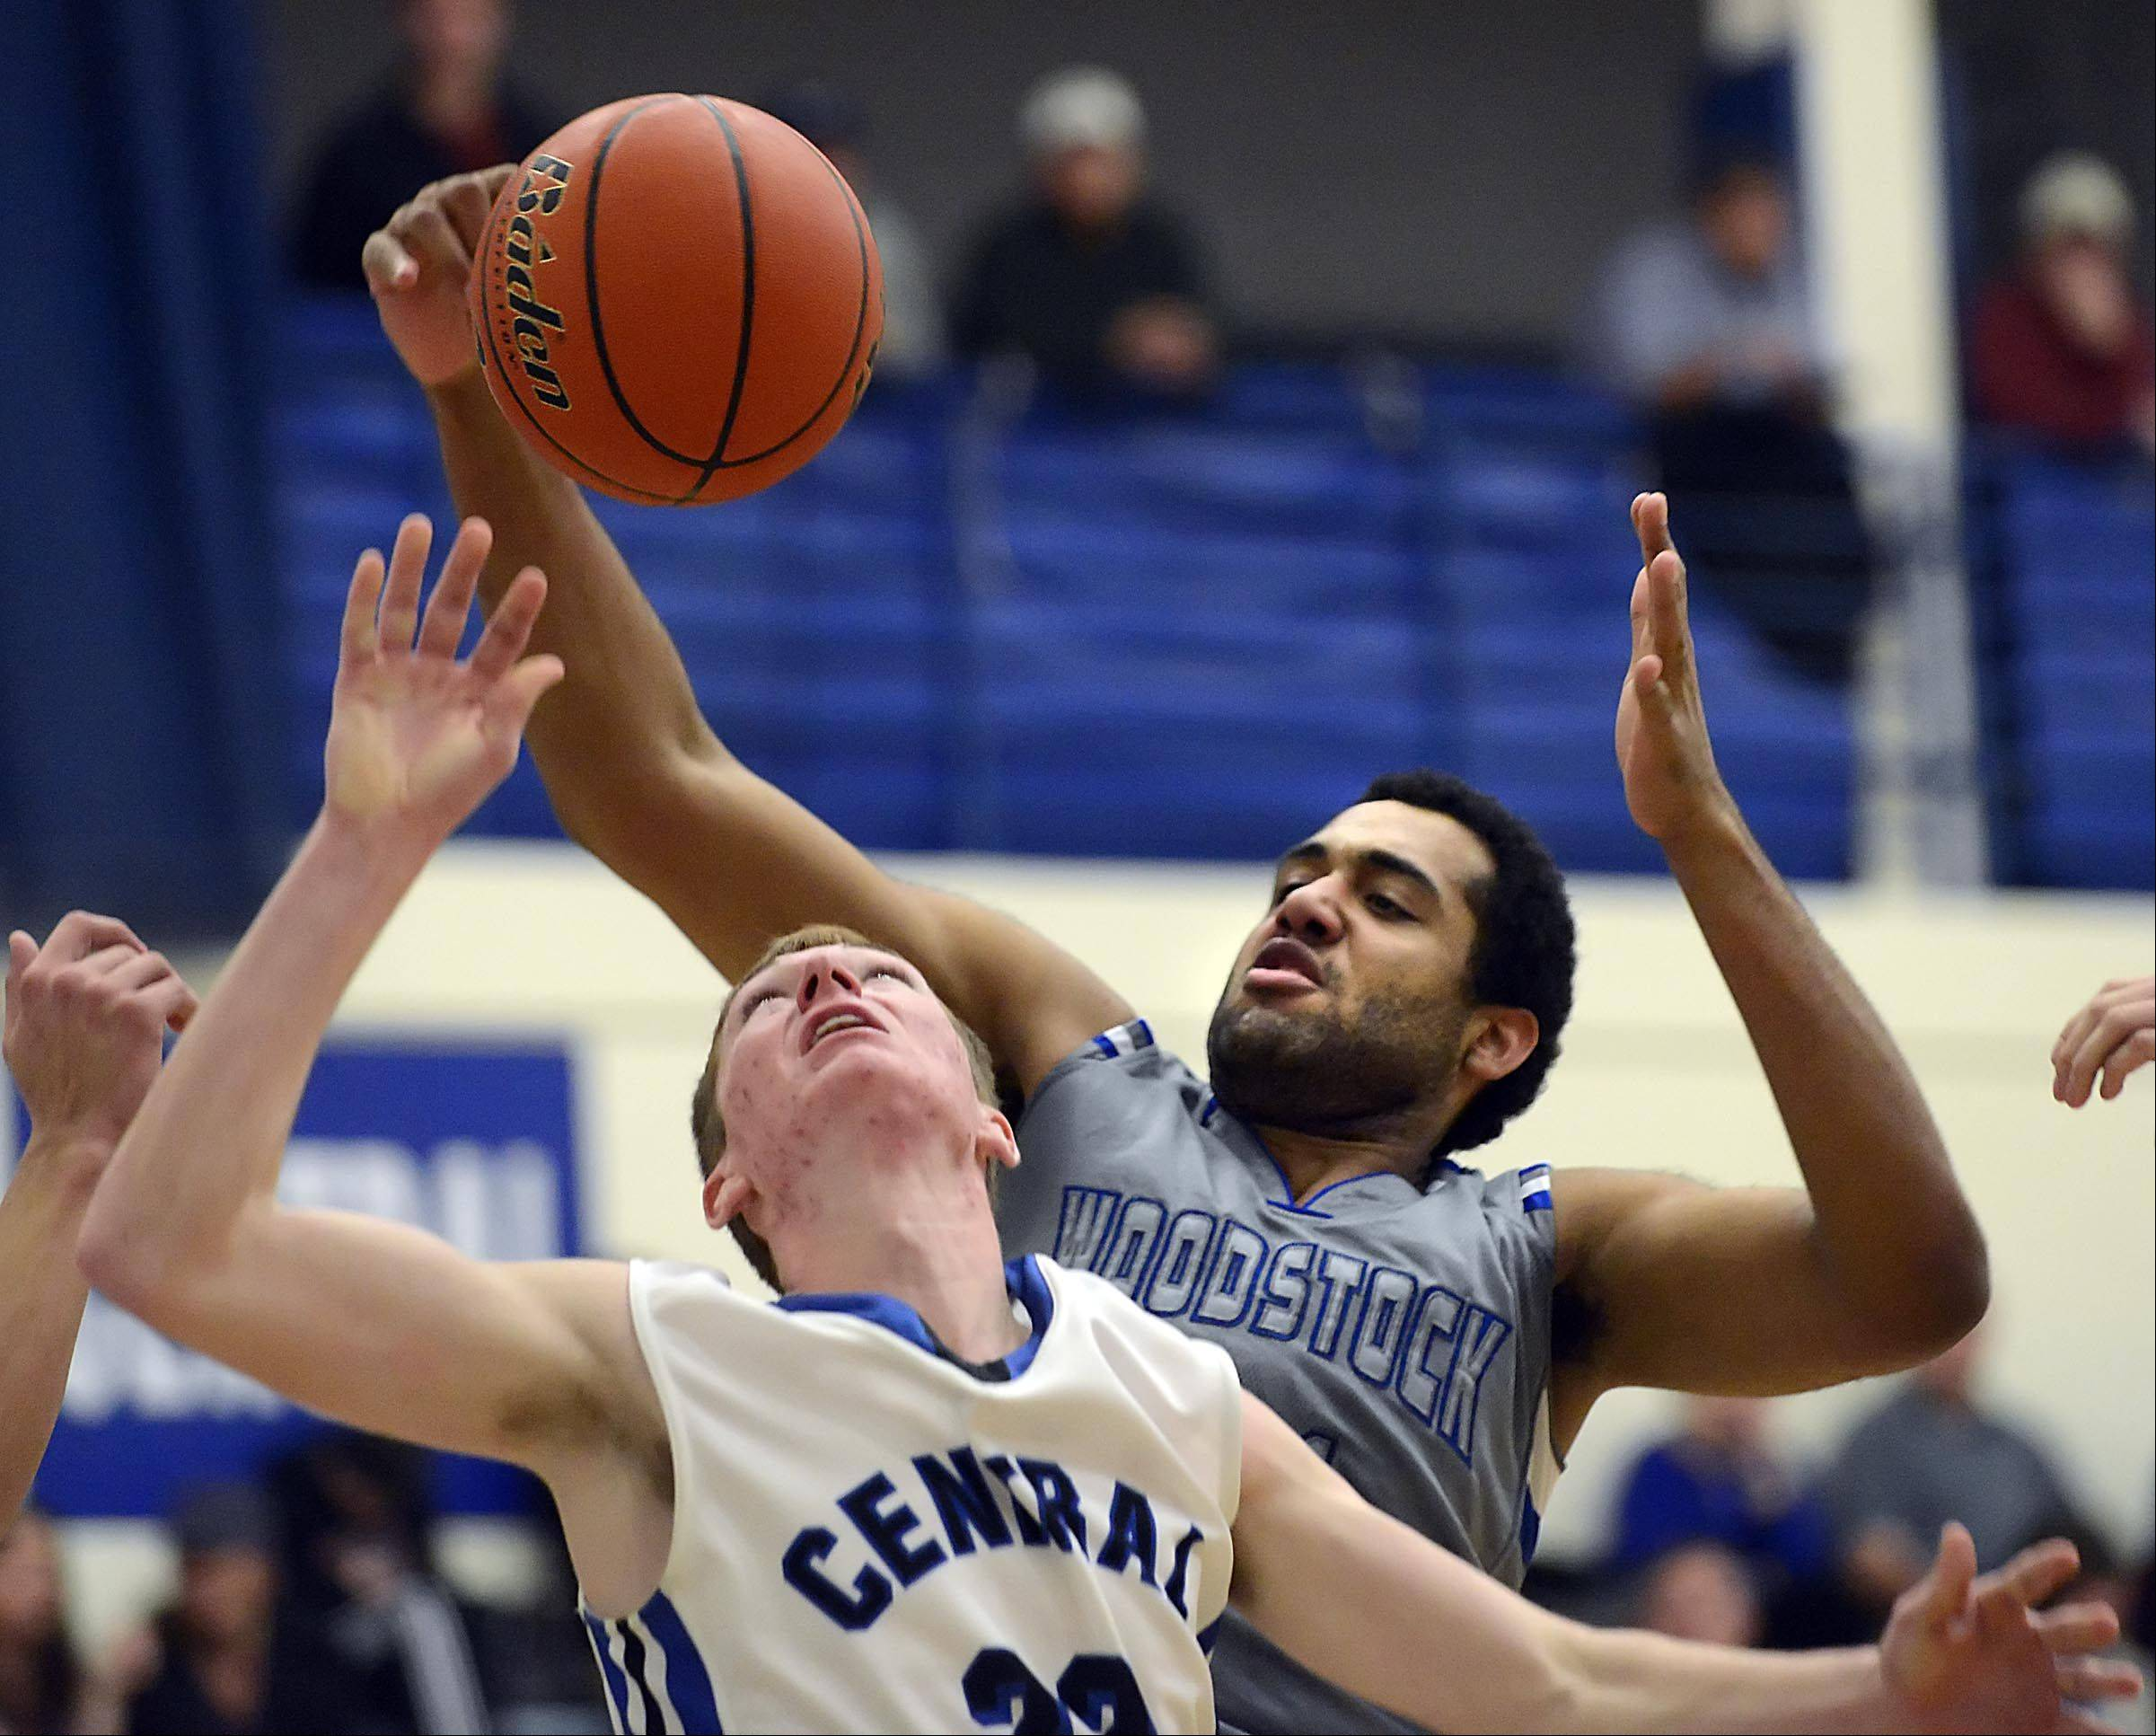 Burlington Central's Sean Fitzgerald and Woodstock's Damian Stoneking compete for a rebound.